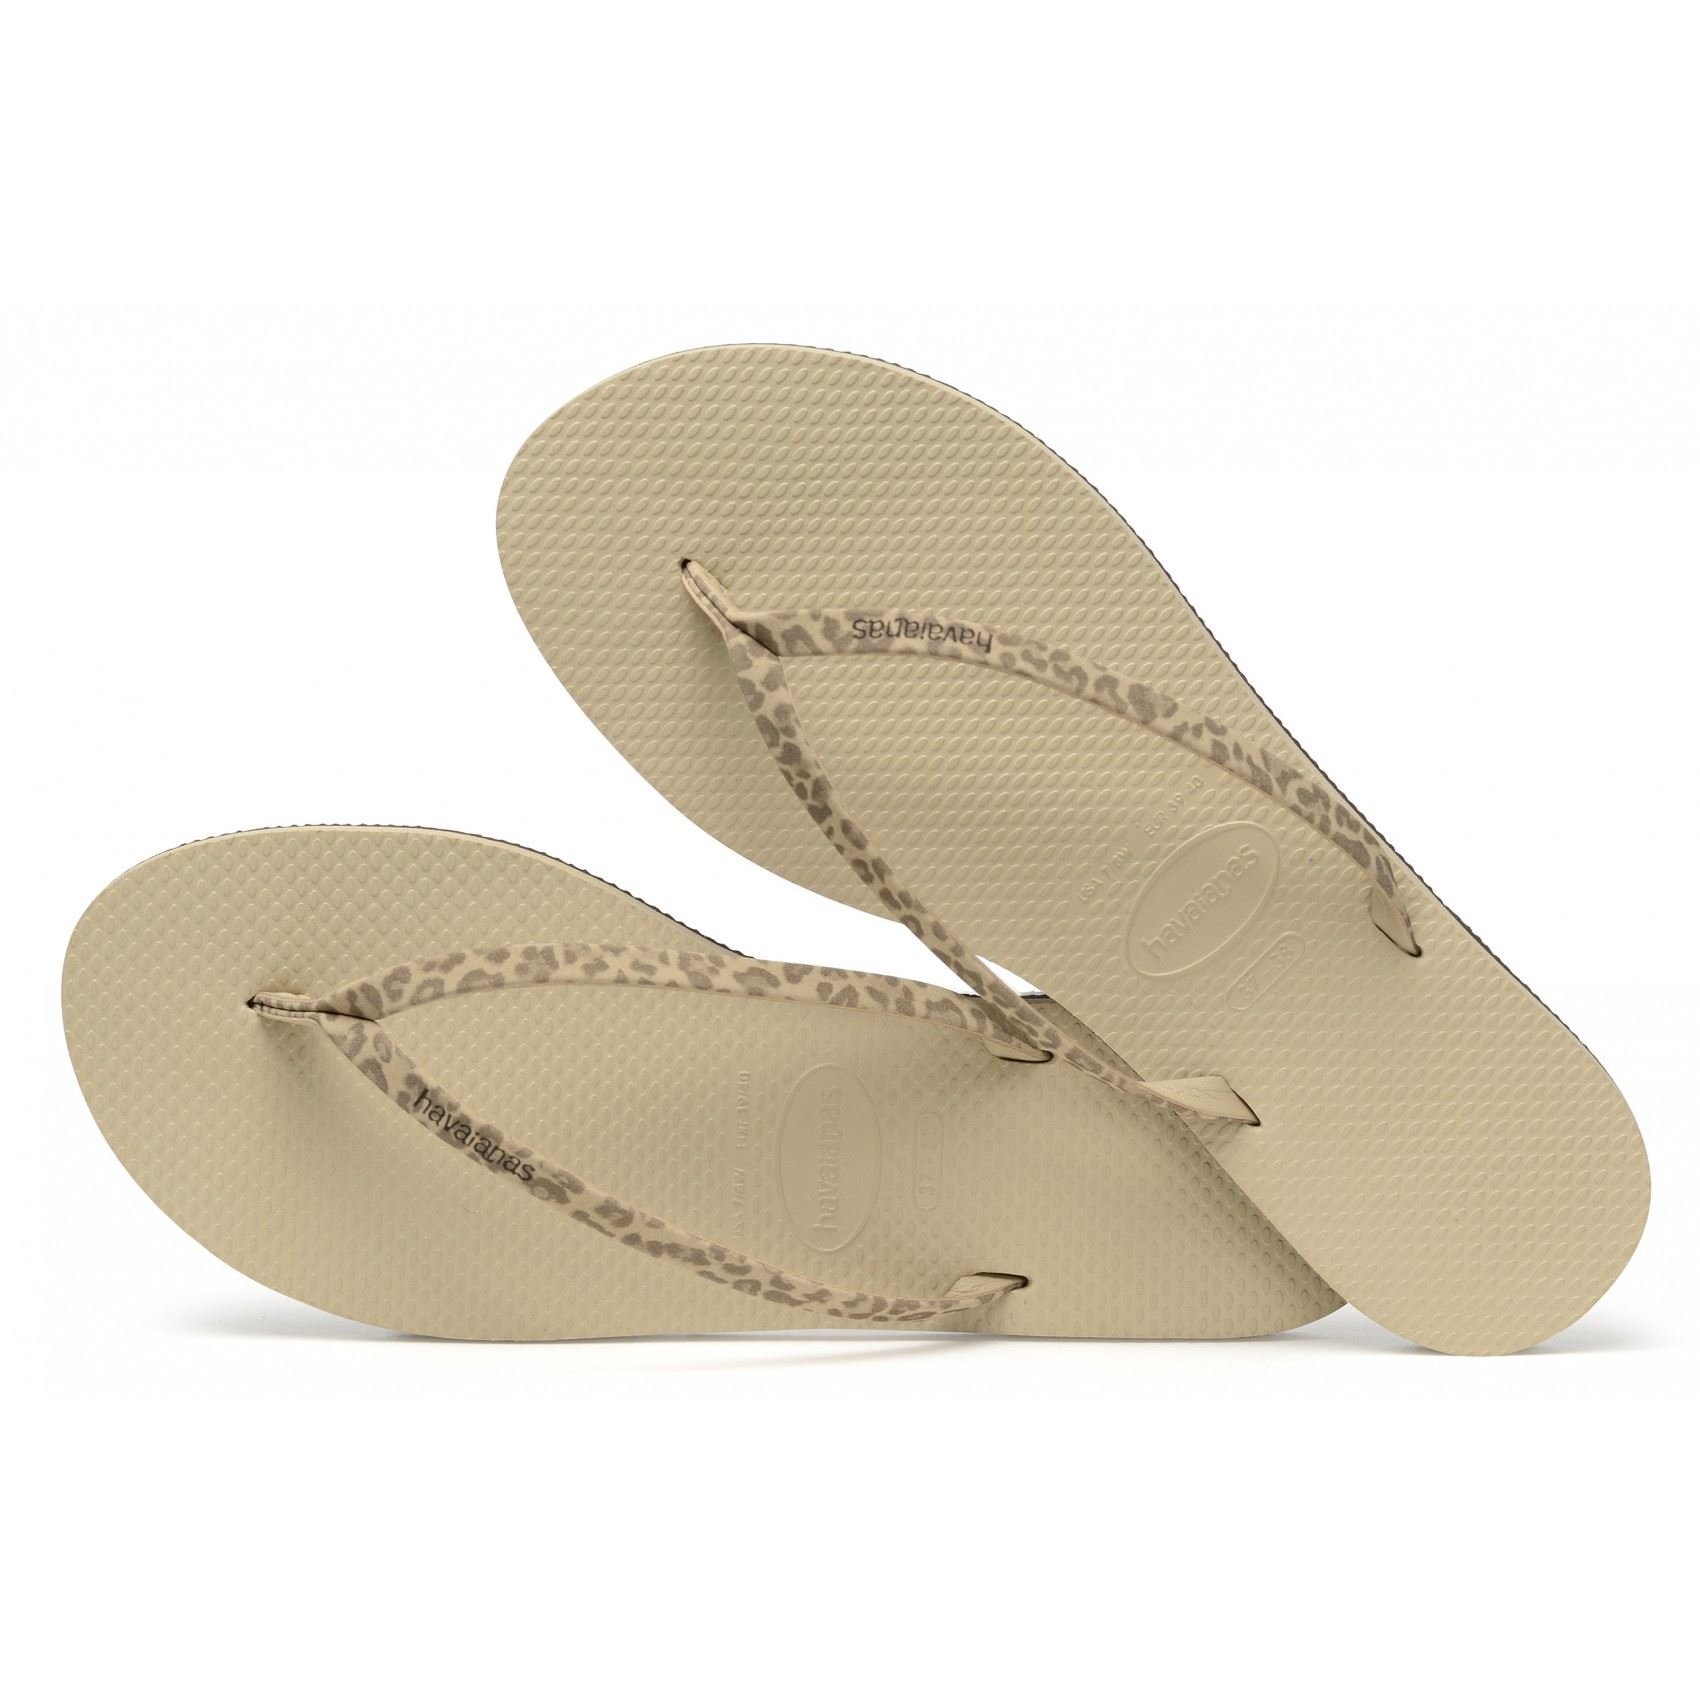 b4a519711 Havaianas Women s You Animals Flip Flops Animal Print Strap Uk5 Sand Grey.  About this product. Picture 1 of 4  Picture 2 of 4  Picture 3 of 4 ...